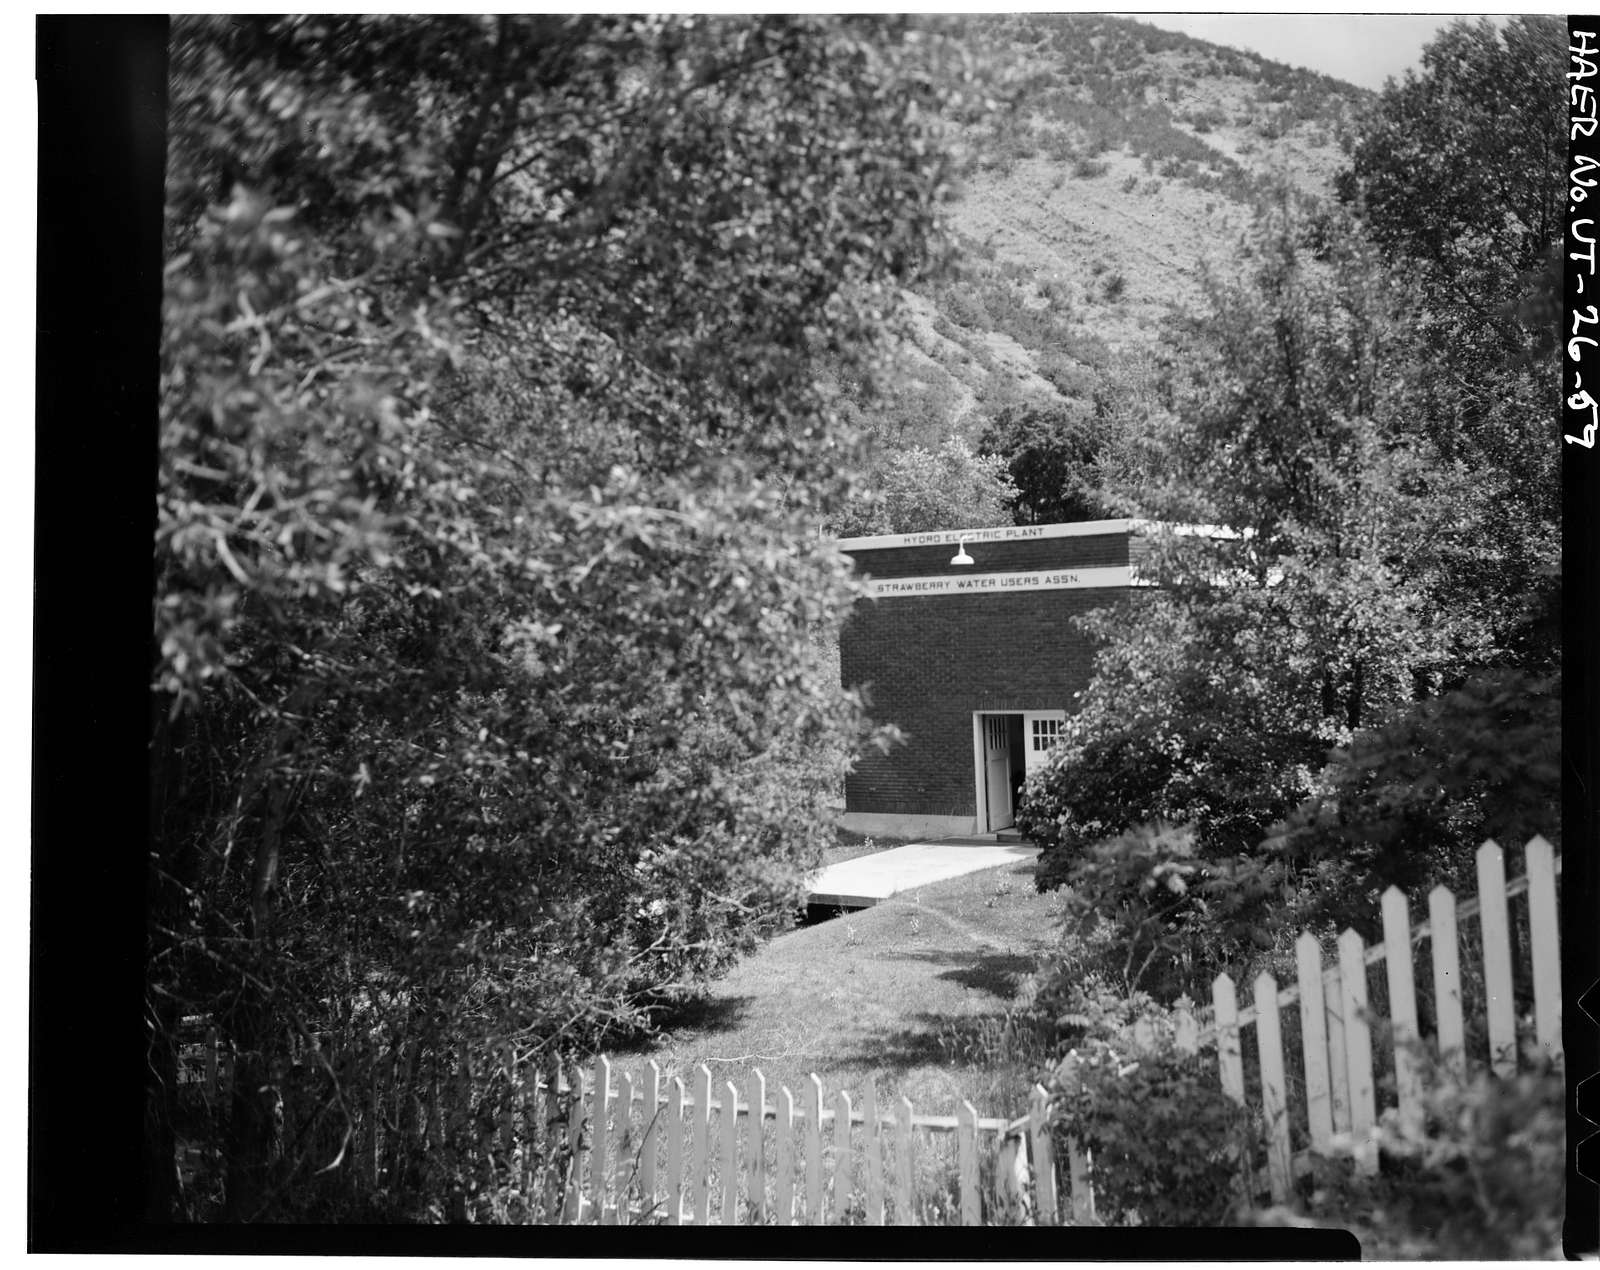 Strawberry Valley Project, Payson, Utah County, UT